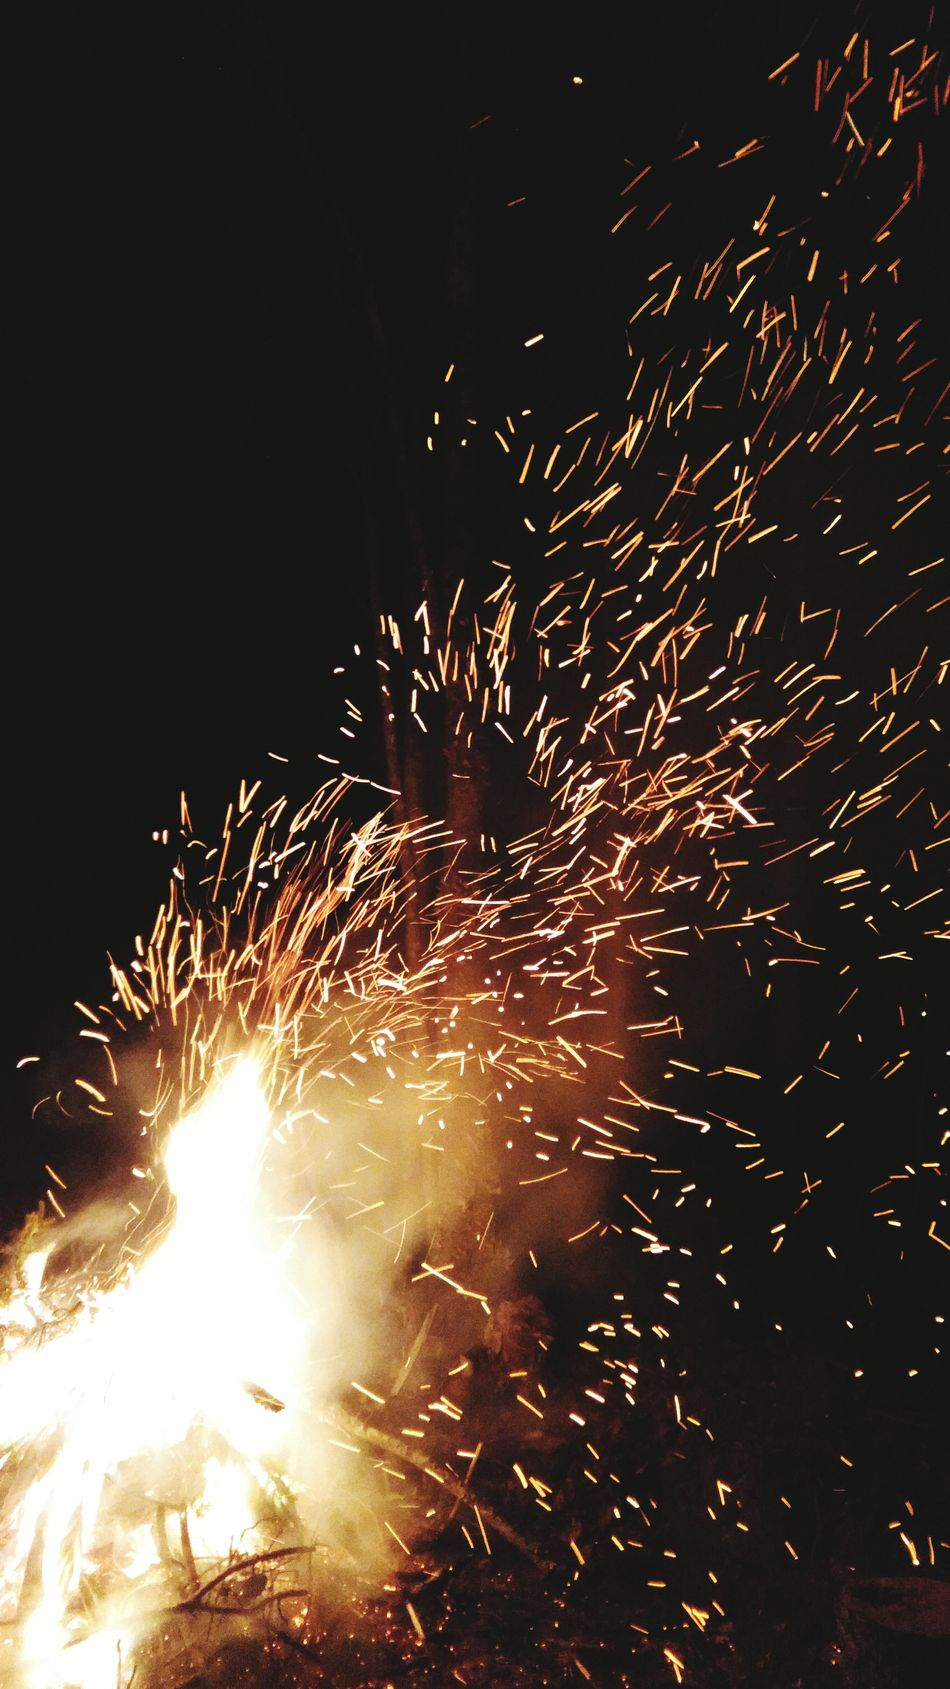 Heat - Temperature Motion Exploding Sparks Outdoors Night No People Campfire Flames Sparks Fly Fire